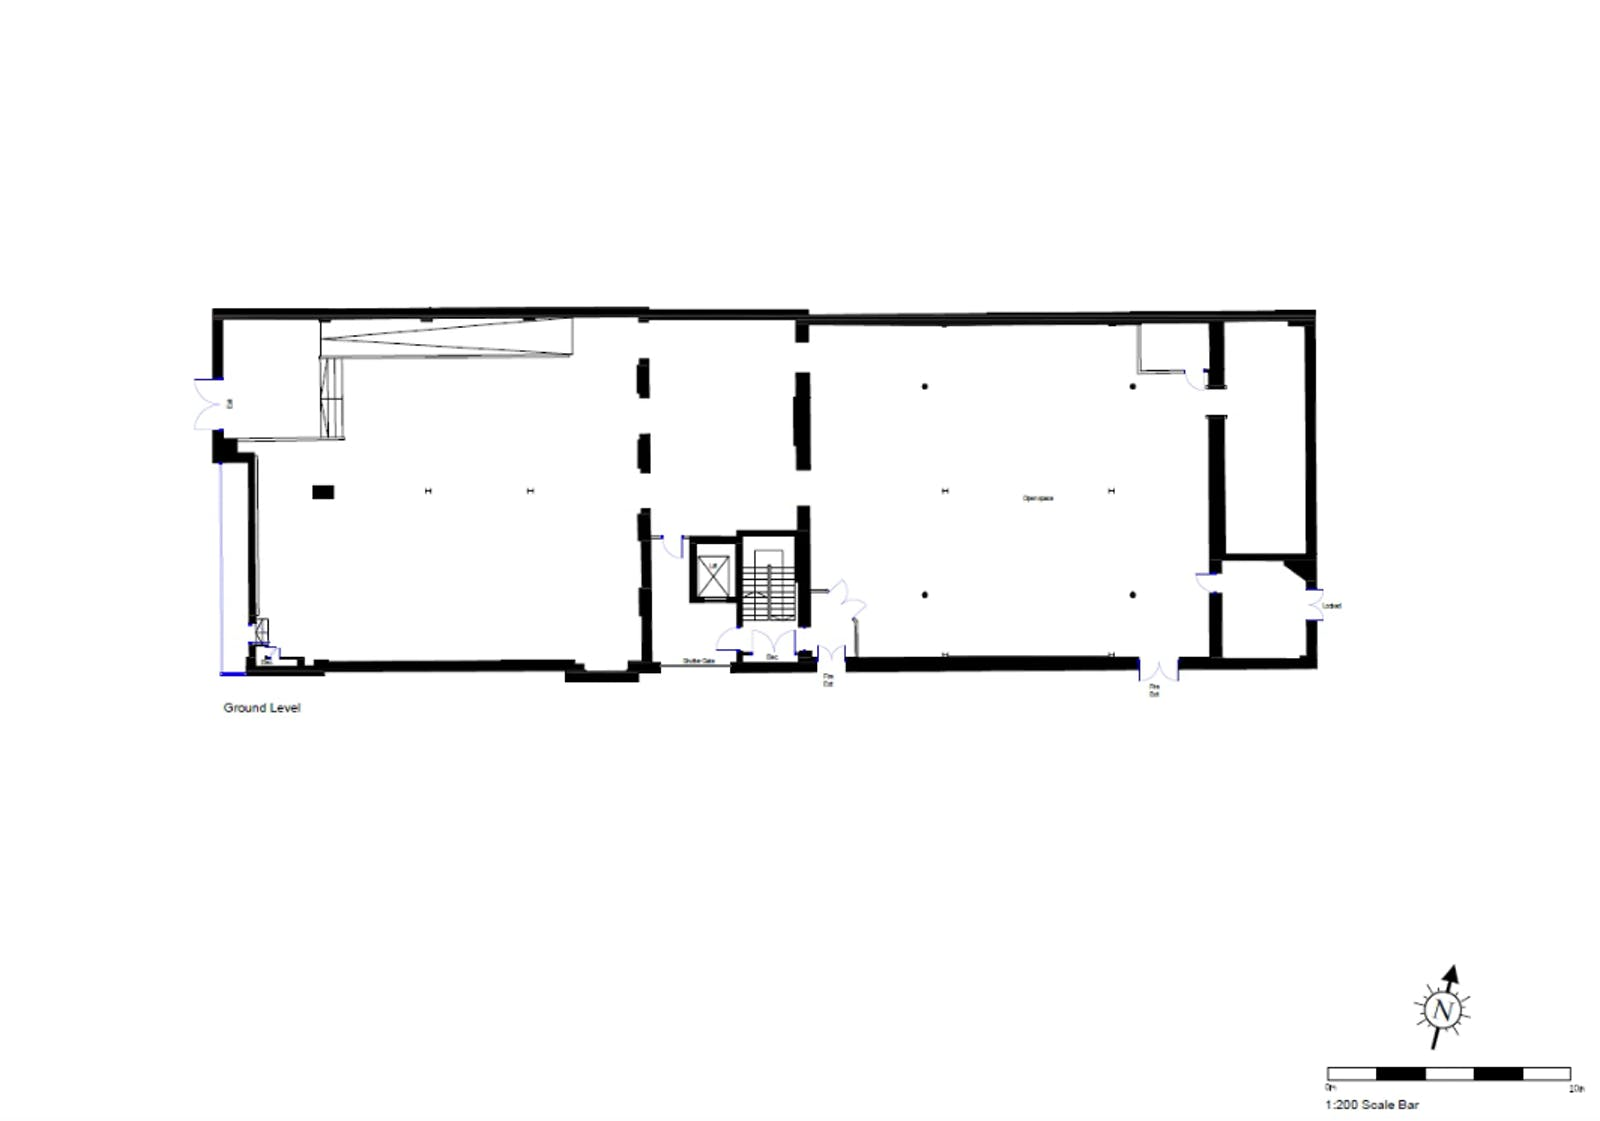 7-9 Chatham Place, London, Office / Industrial / Trade Counter / Retail / Showroom / Leisure / D2 (Assembly and Leisure) To Let - Screenshot 20210312 at 112602.png